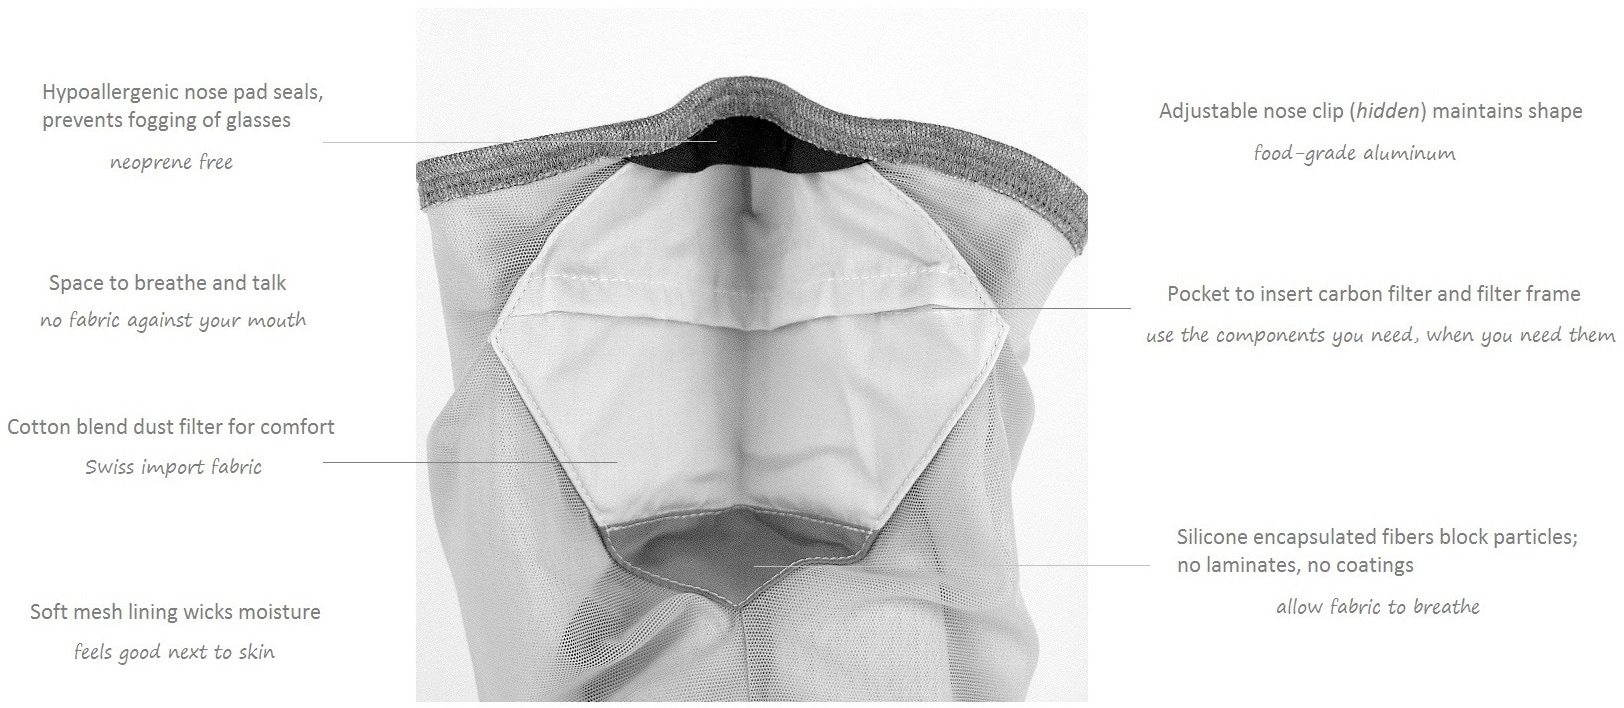 Mask scarf has a neoprene free dust mask and carbon filter by Skotti